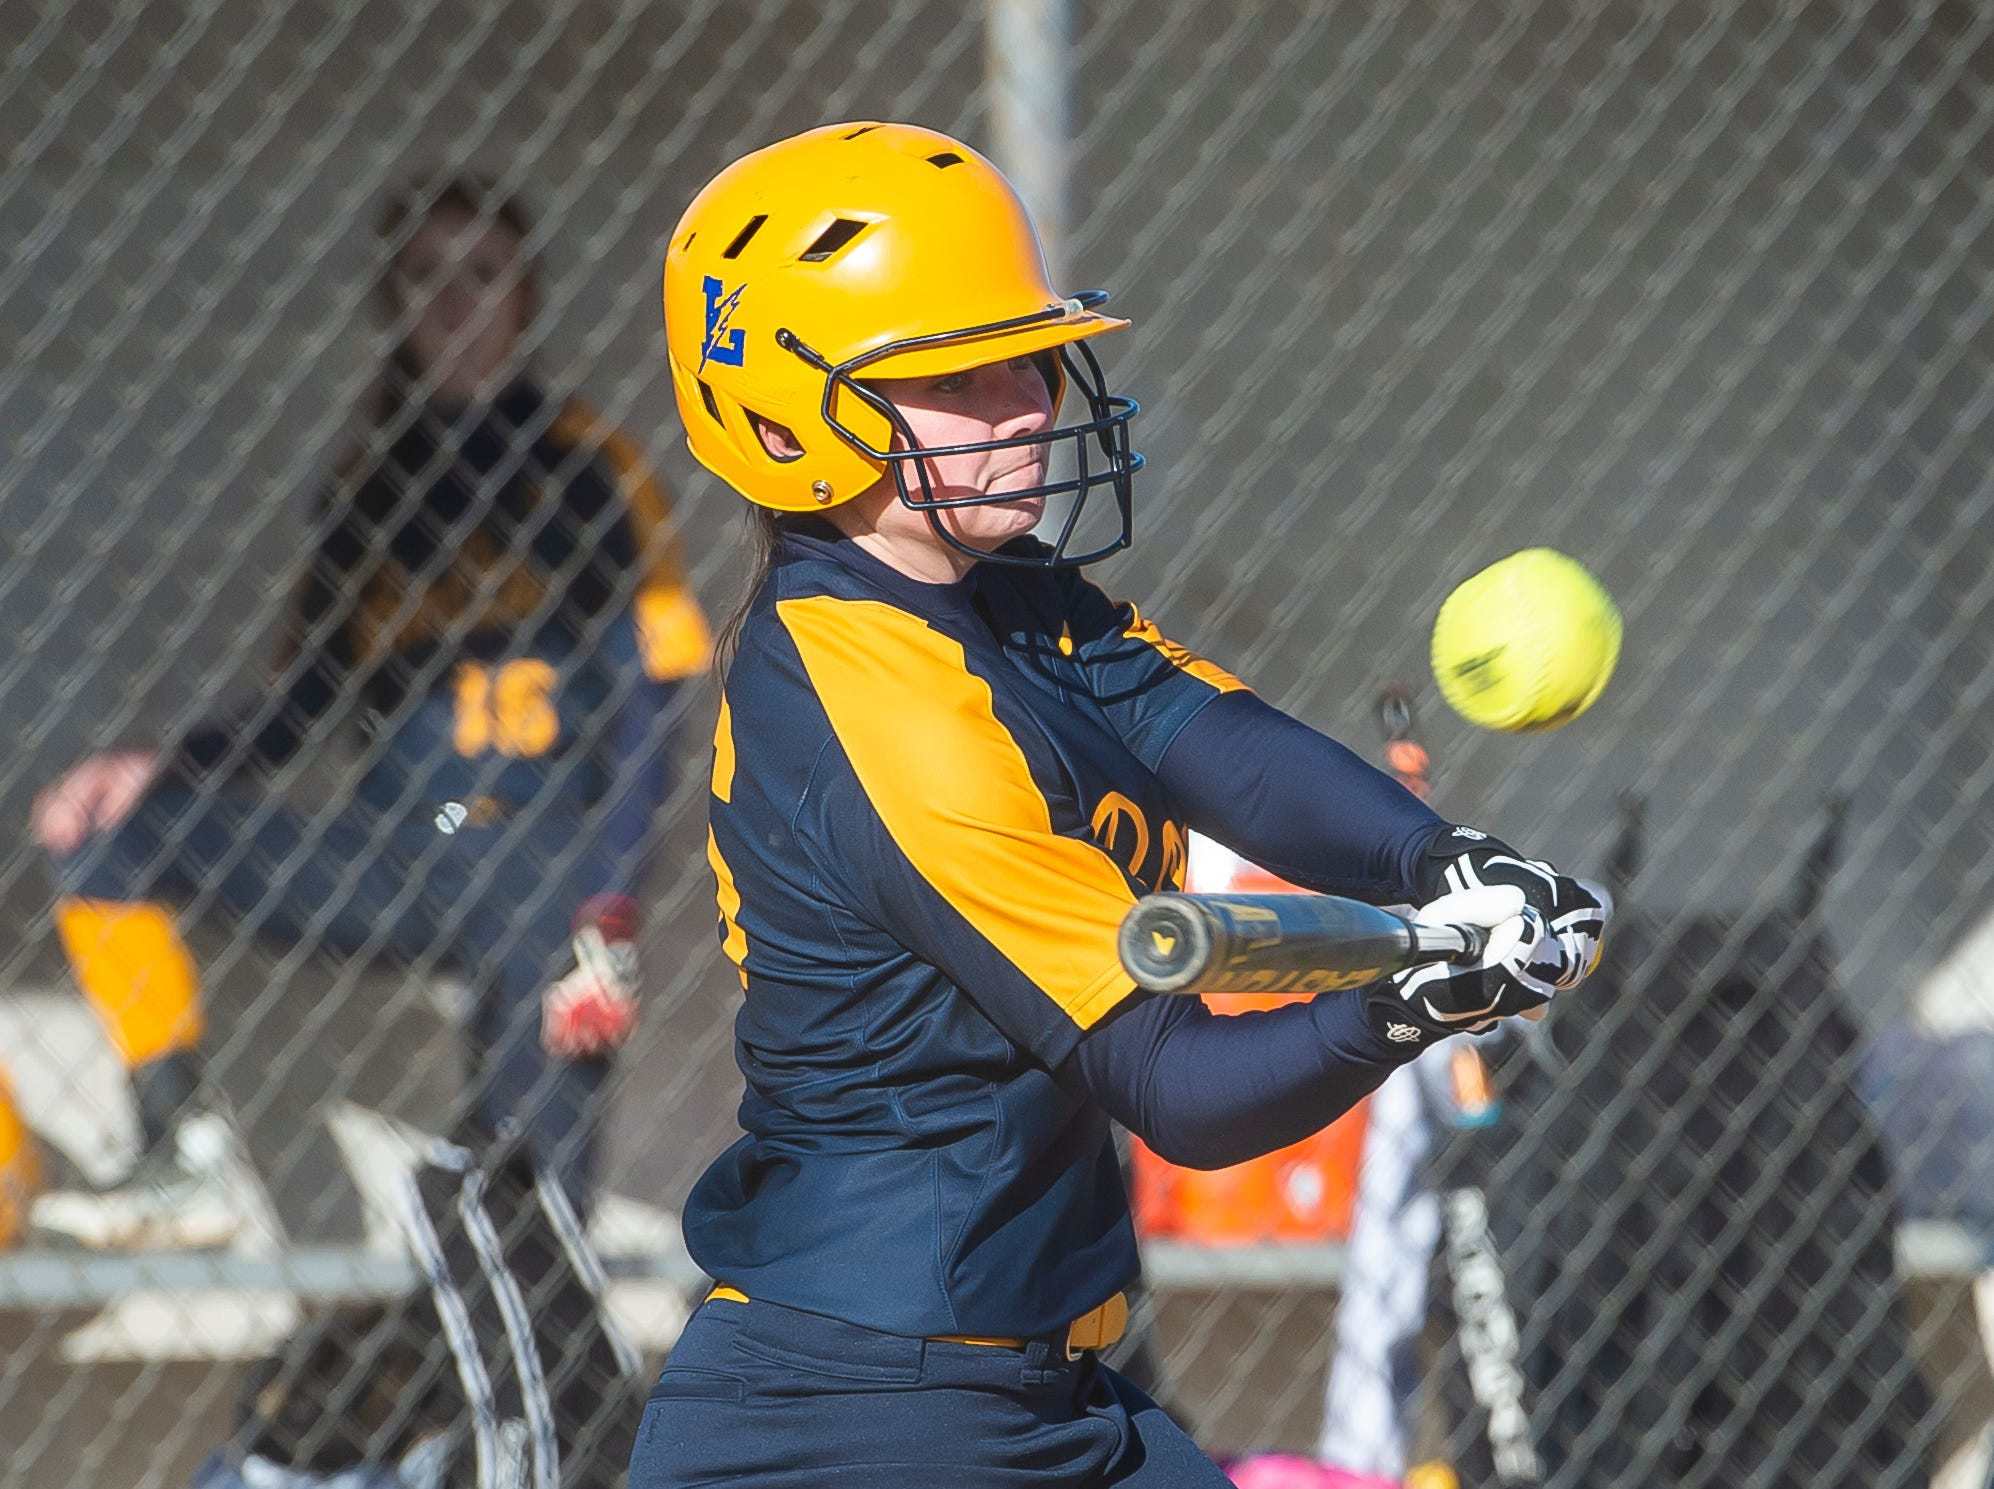 Littlestown's Molly Watkins makes contact with the ball during a YAIAA softball game against Gettysburg on Monday, April 1, 2019. The Bolts won 10-4.